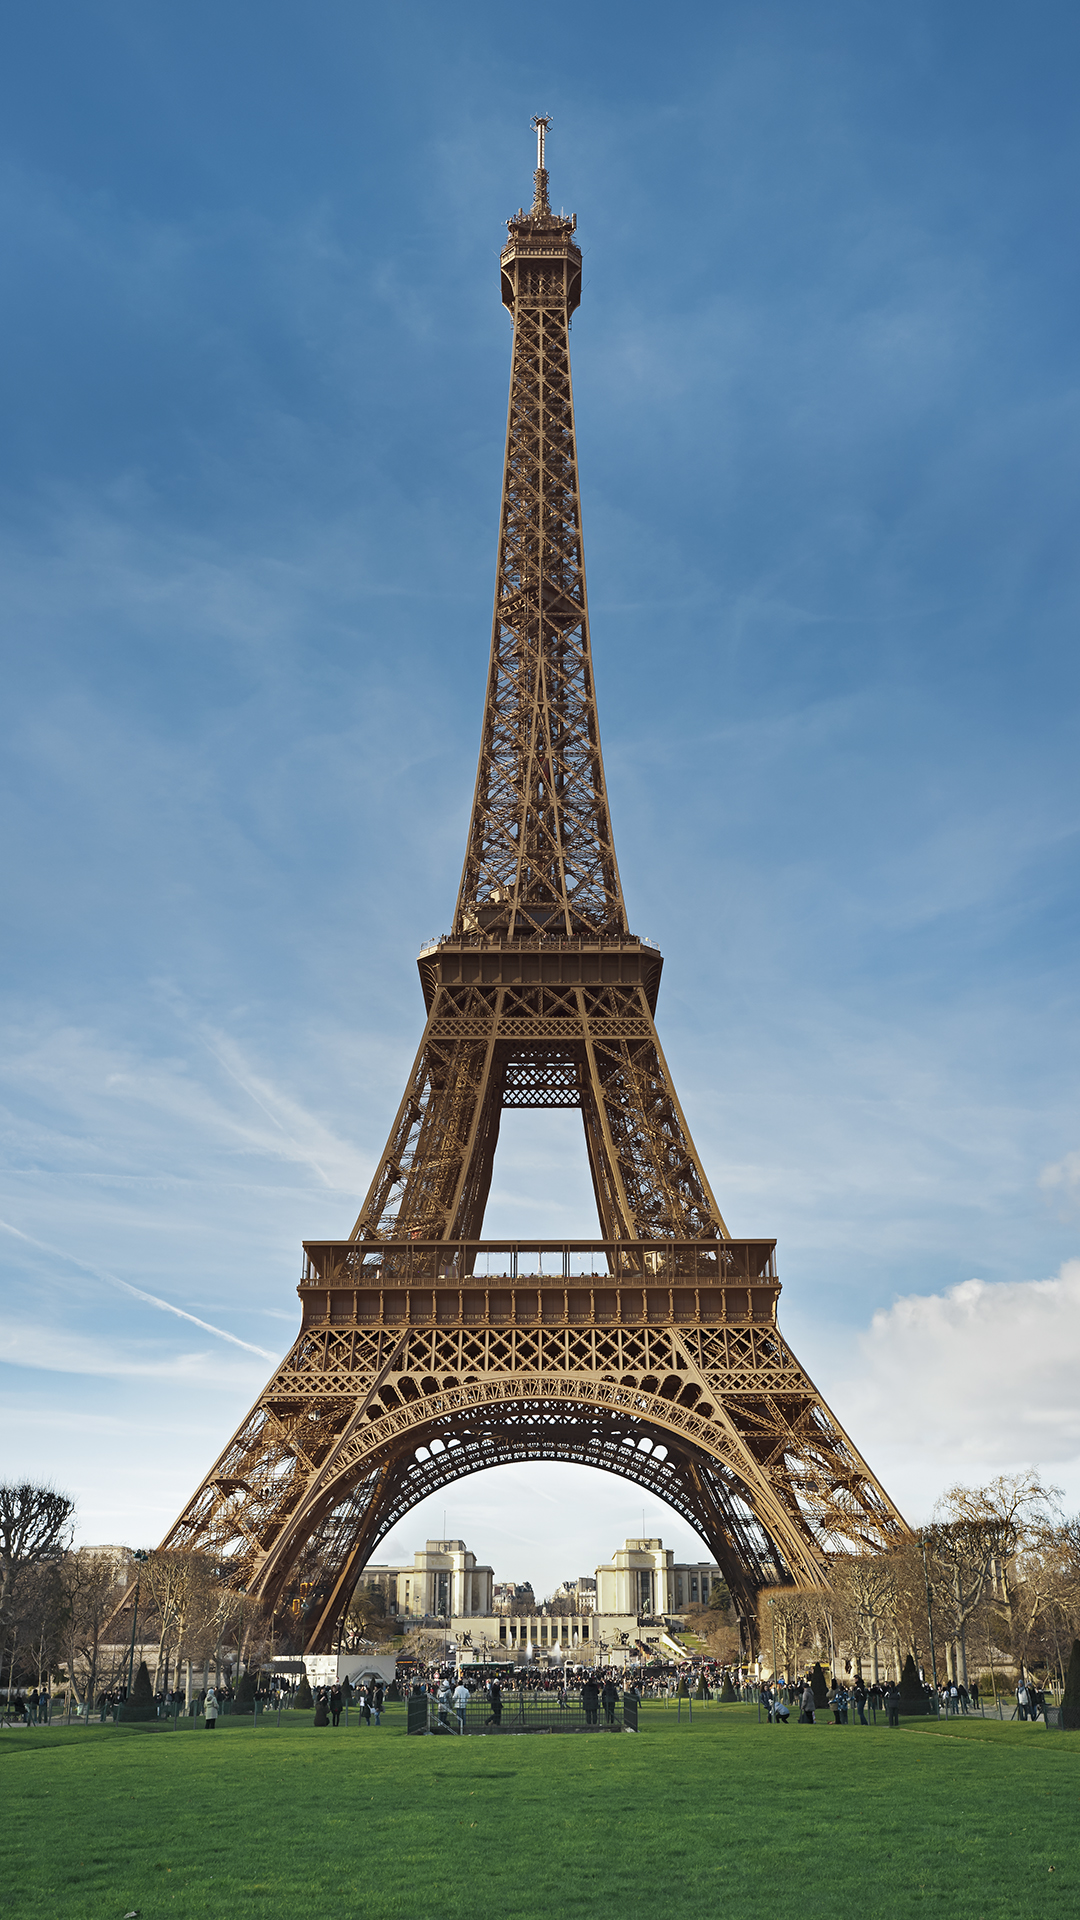 Eiffel Tower Paris France Best Htc One Wallpapers Free And Easy